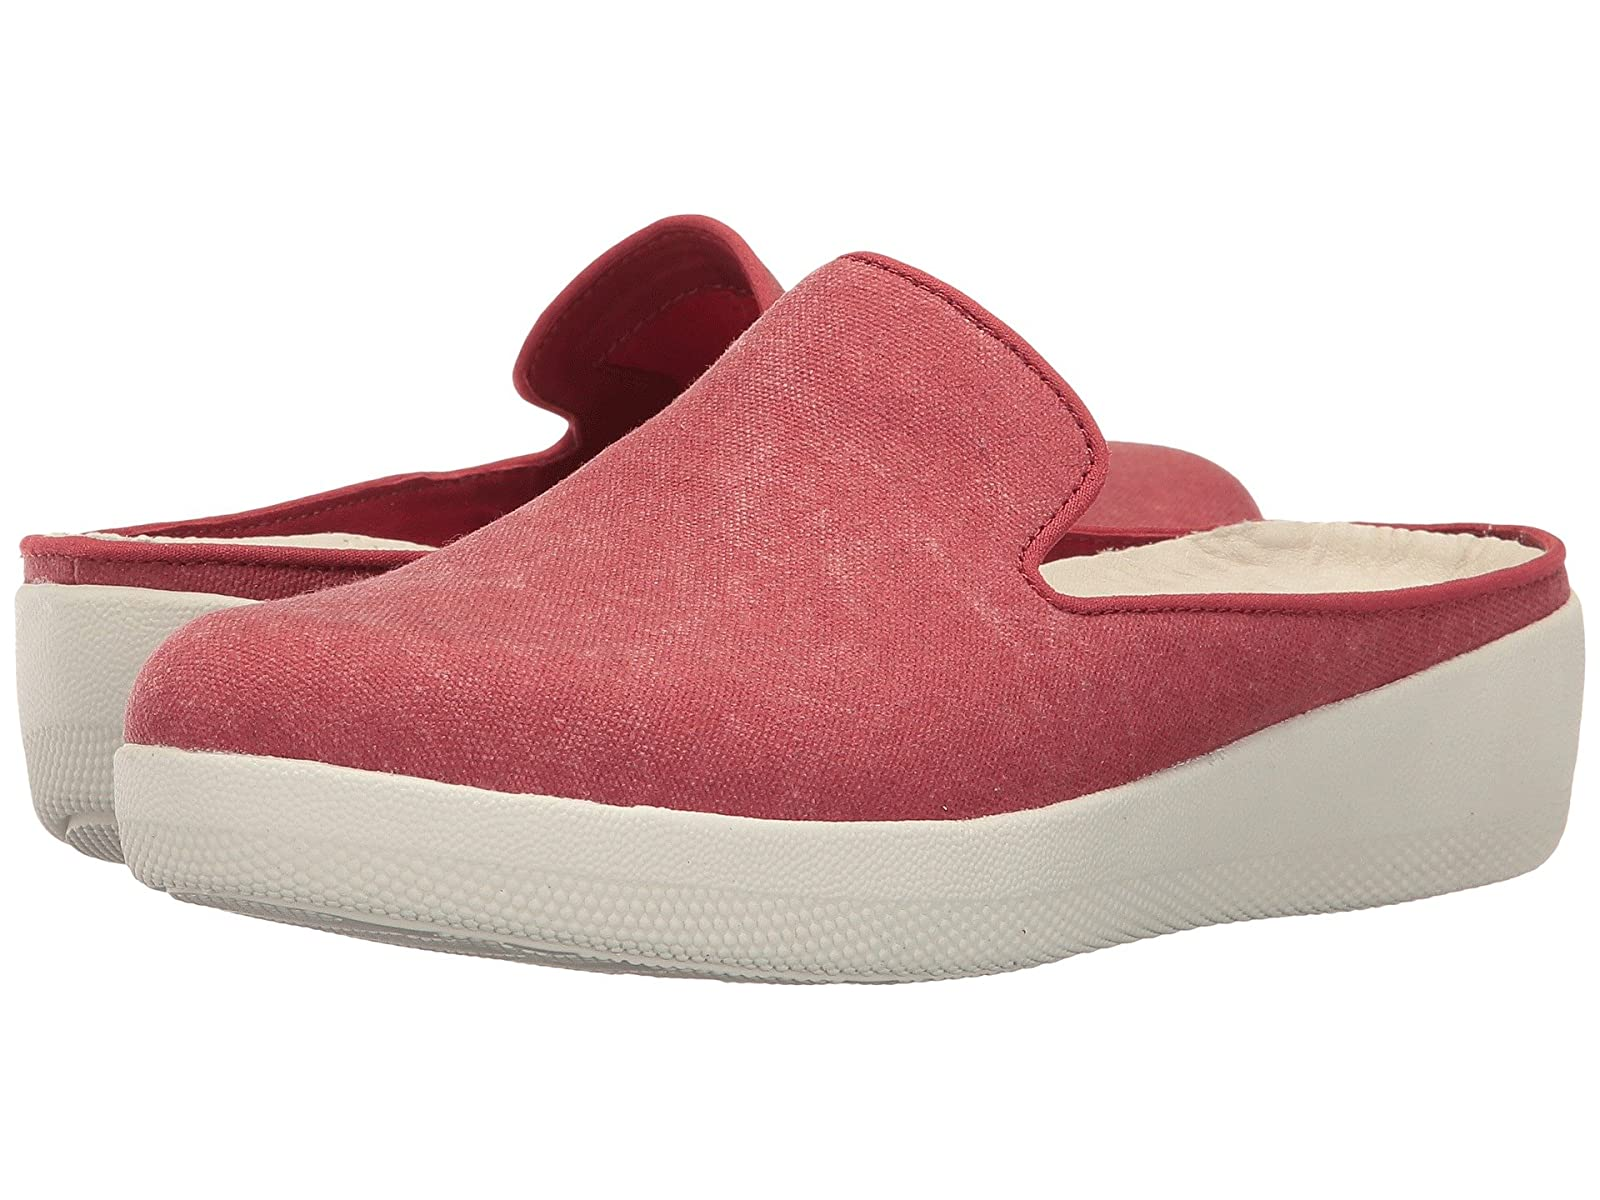 FitFlop Superskate Slip-OnsCheap and distinctive eye-catching shoes